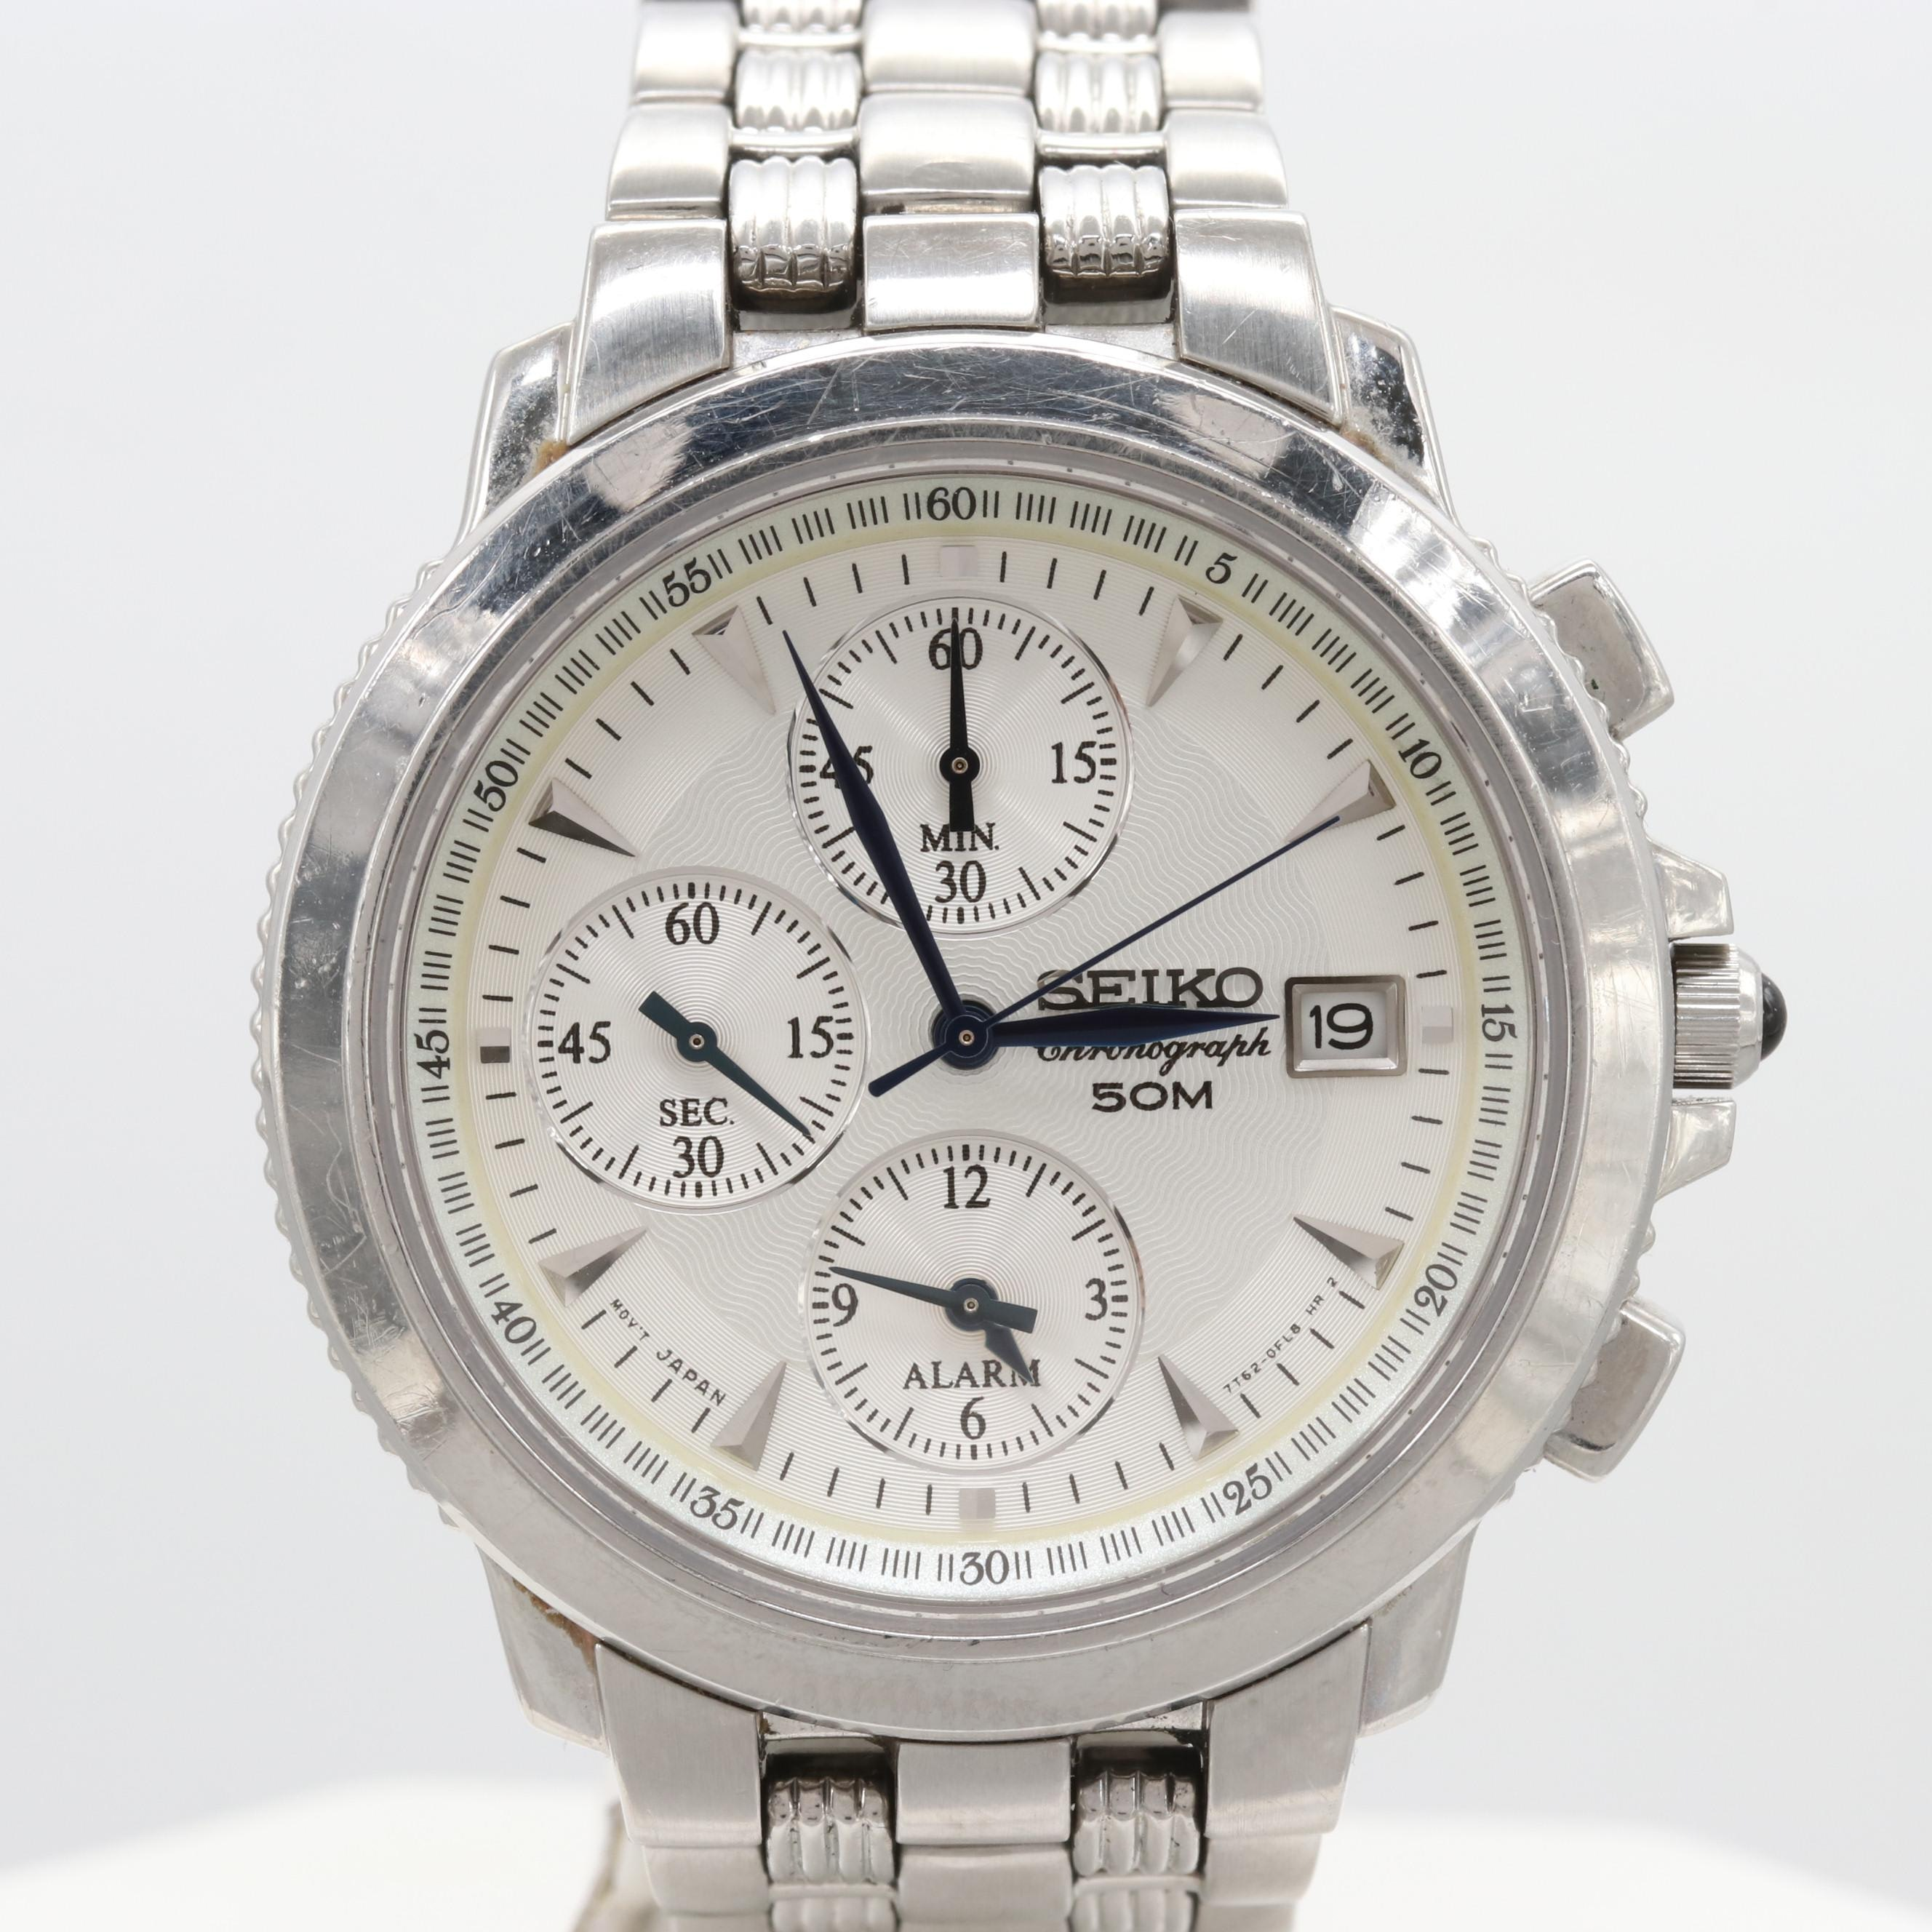 Seiko Stainless Steel Quartz Chronograph Wristwatch